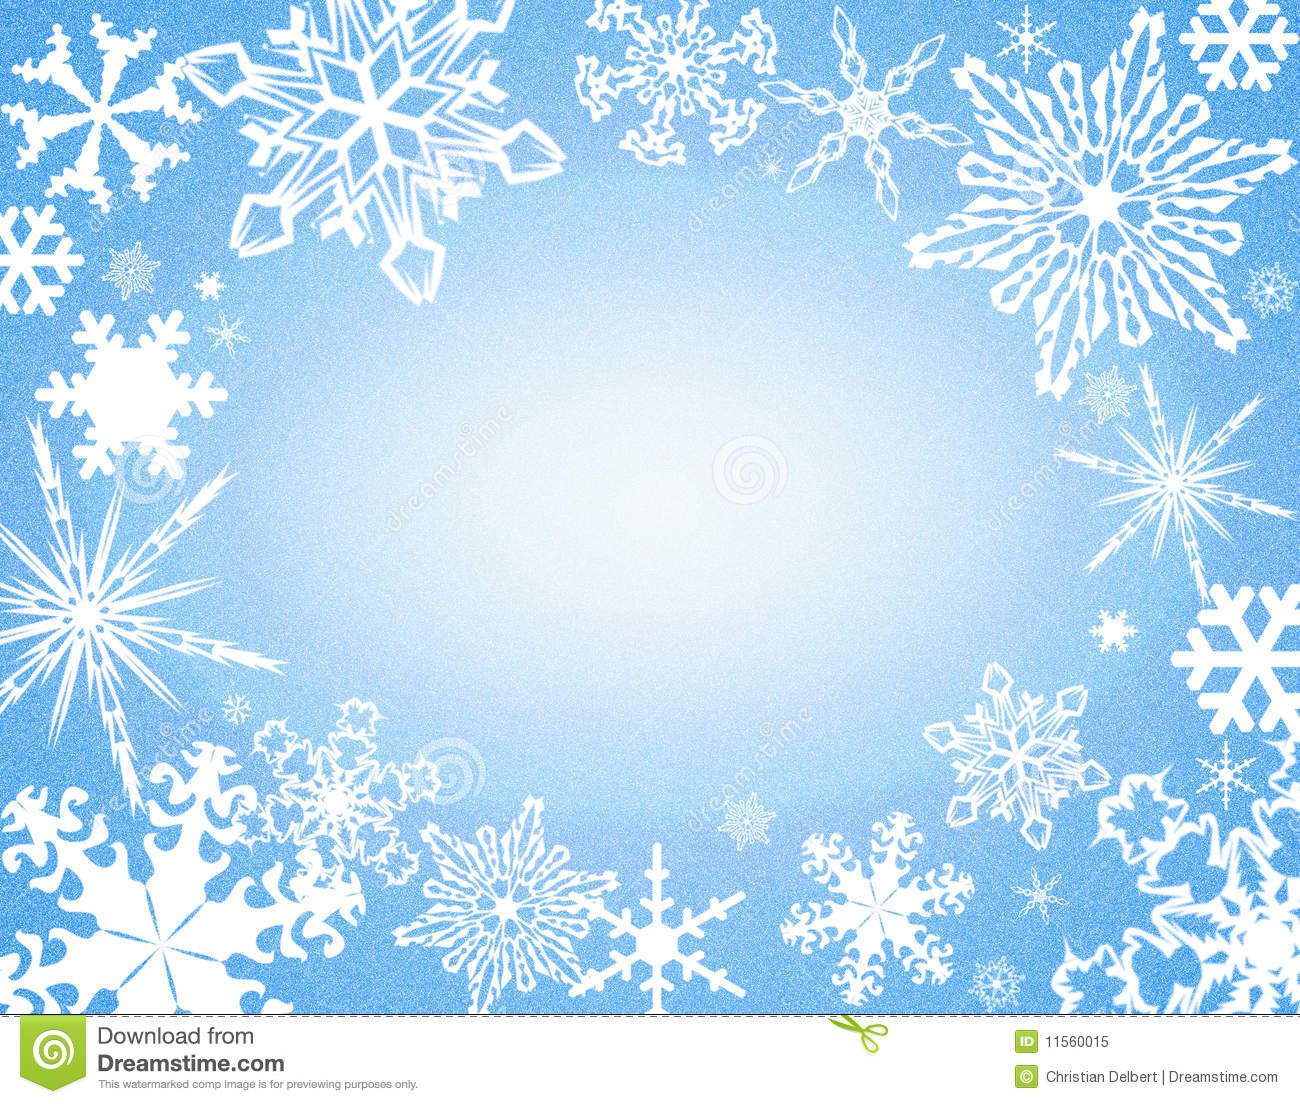 Snowflake Border On Blue Royalty Free Stock Photo - Image: 11560015